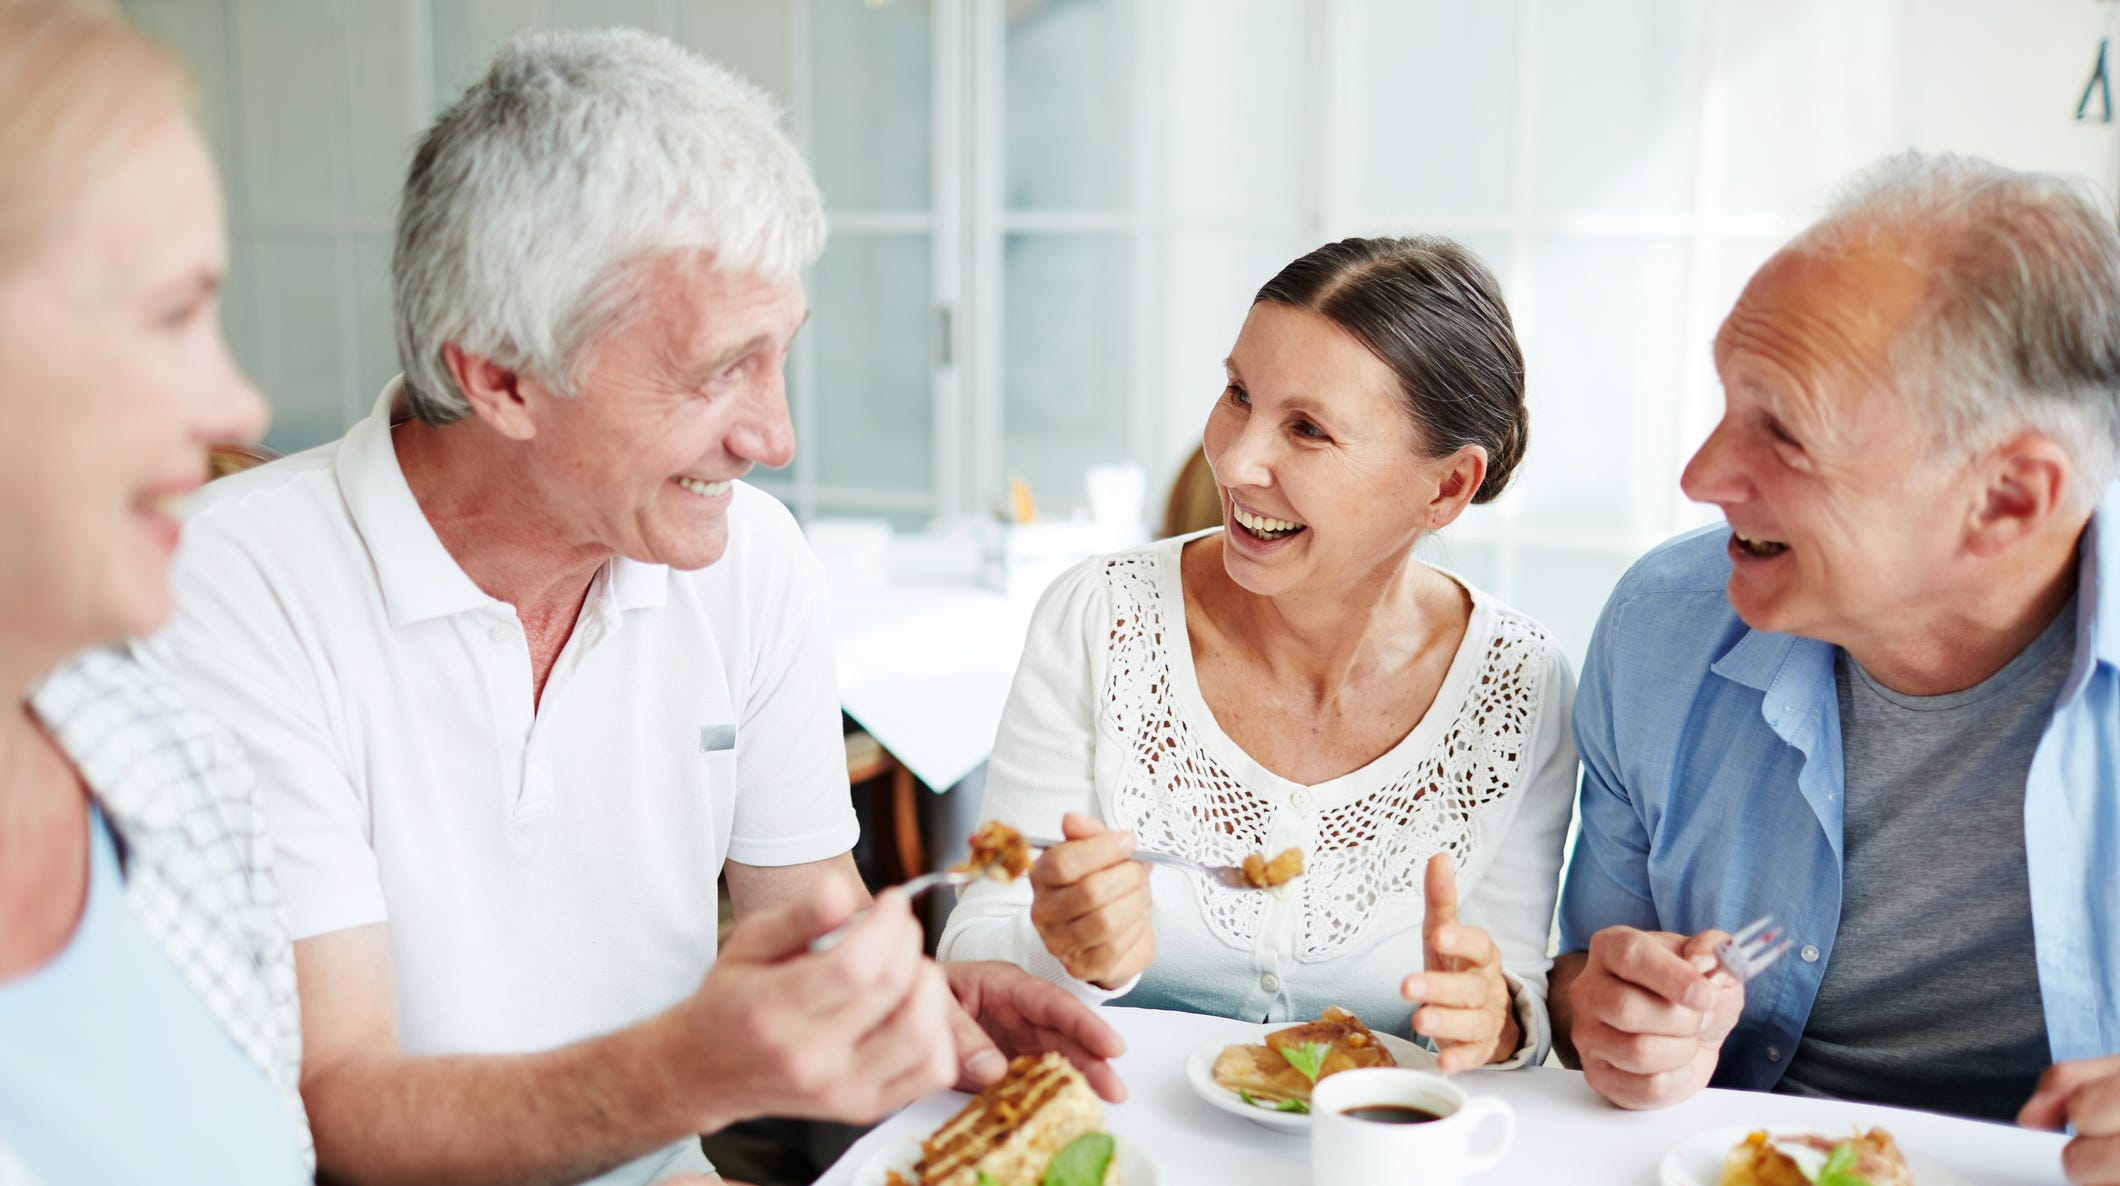 At Columbine's independent living communities, such as The Winslow, guests have access to full-service restaurant-style dining for breakfast and dinner, and can fill in the midday gap with snacks or lunch according to their preferences.